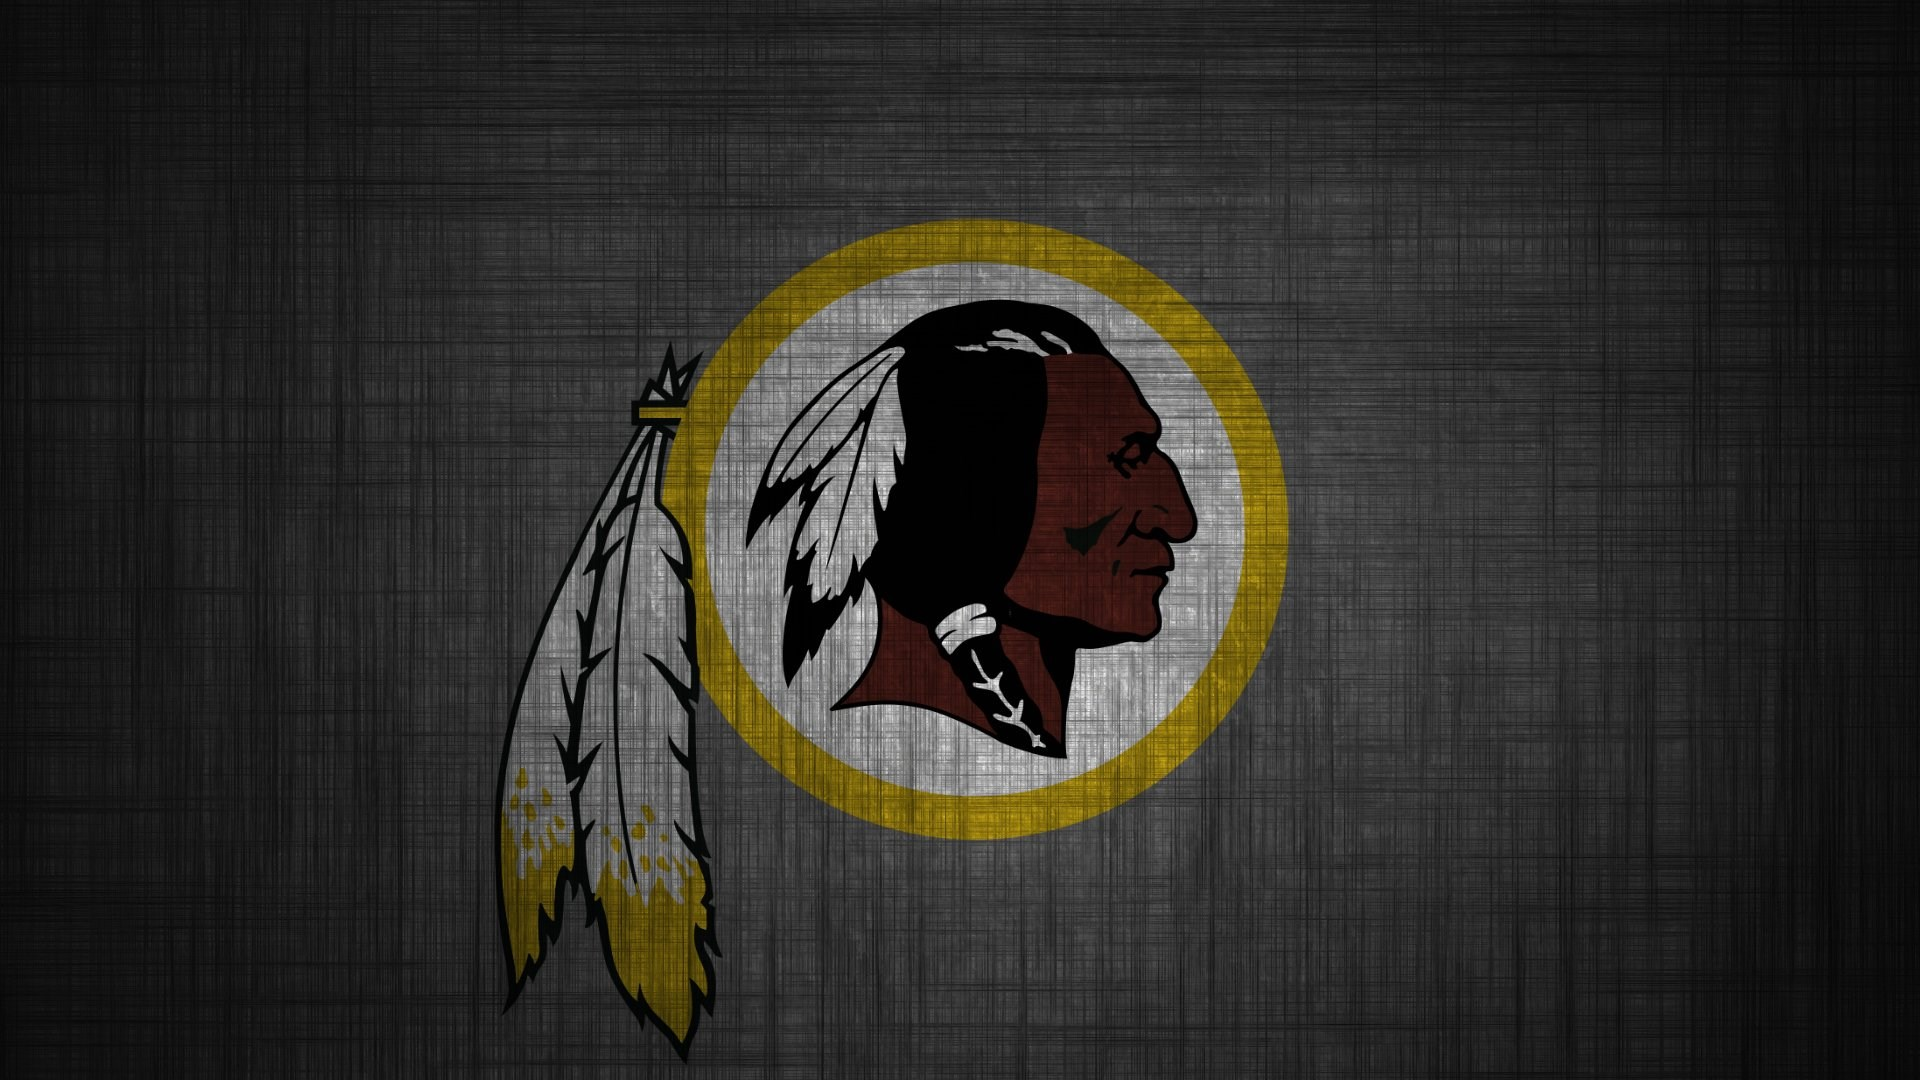 hd-redskins-1920-x-1080-kB-wallpaper-wpc9005946